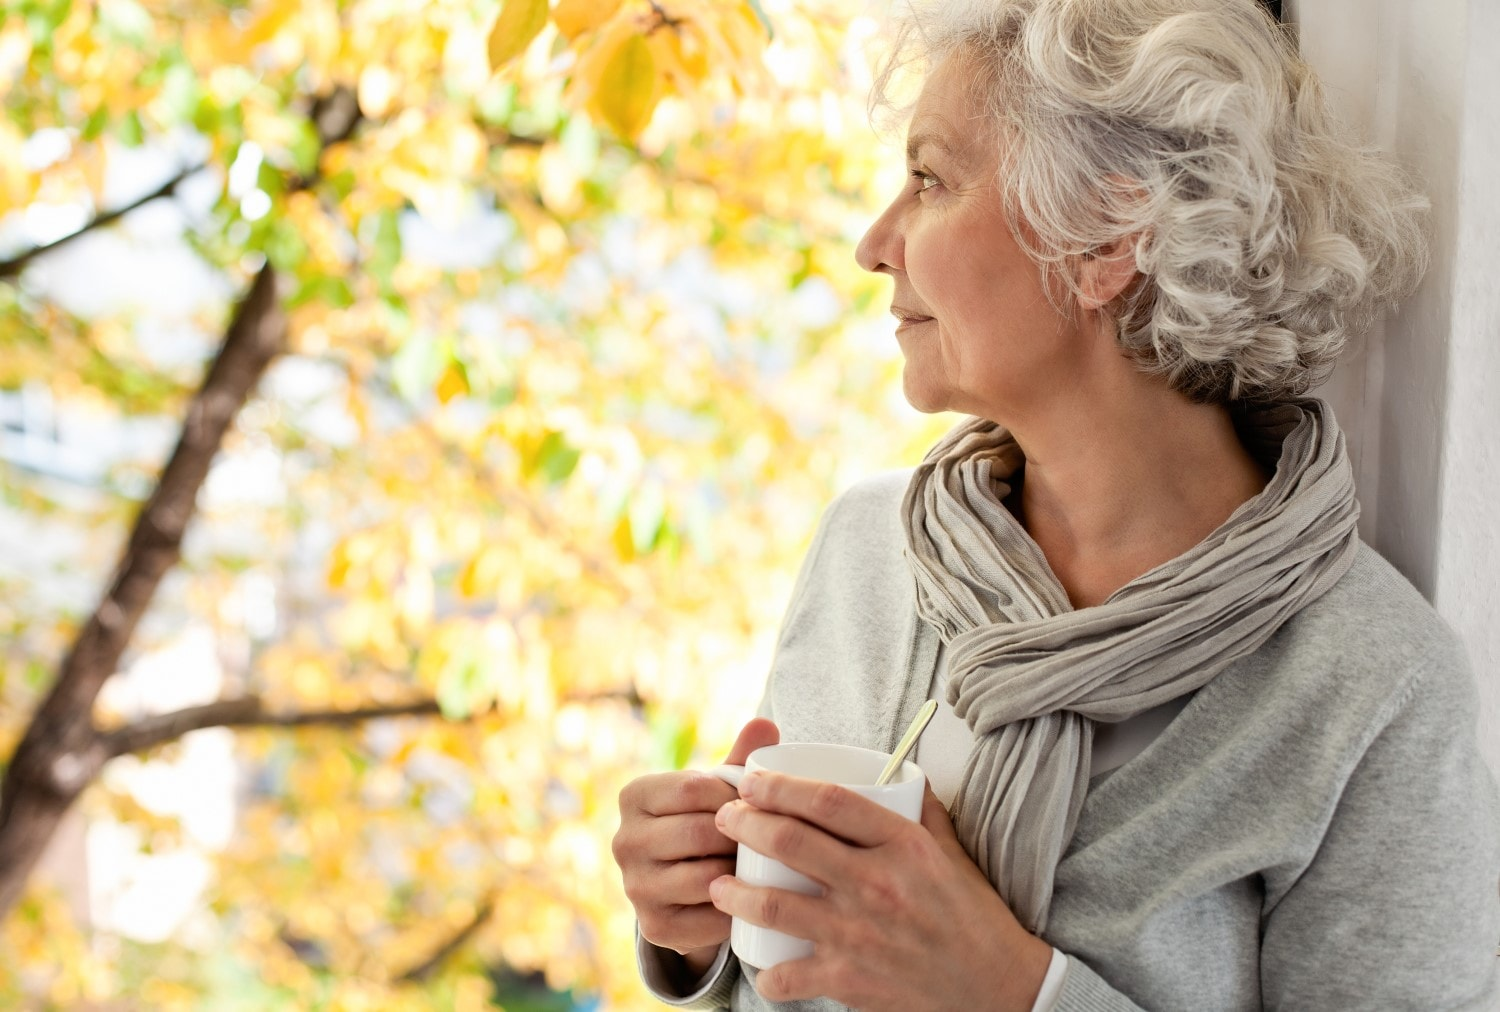 How can seniors combat depression?